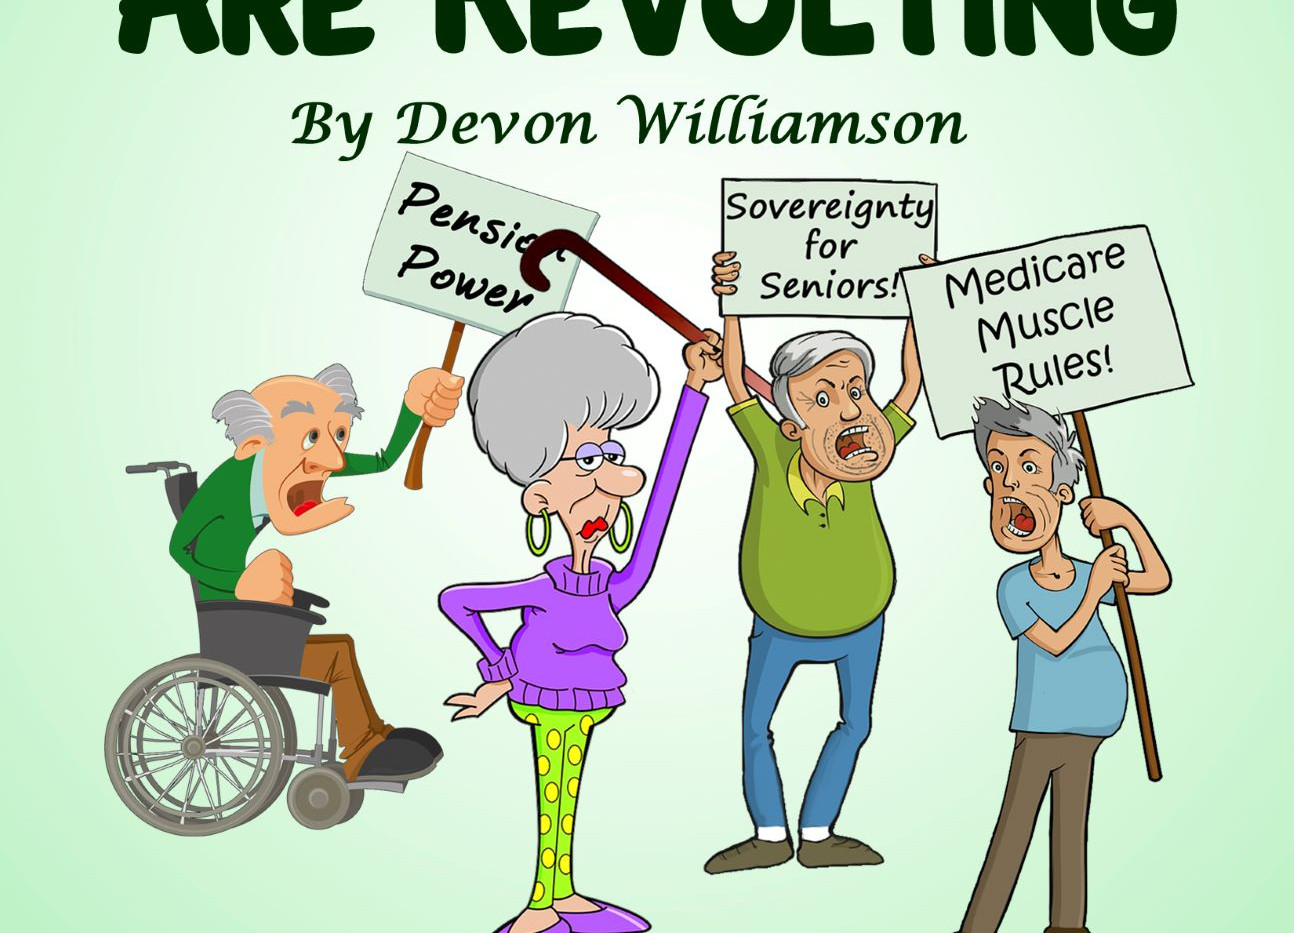 Playbill-Old People A.jpg